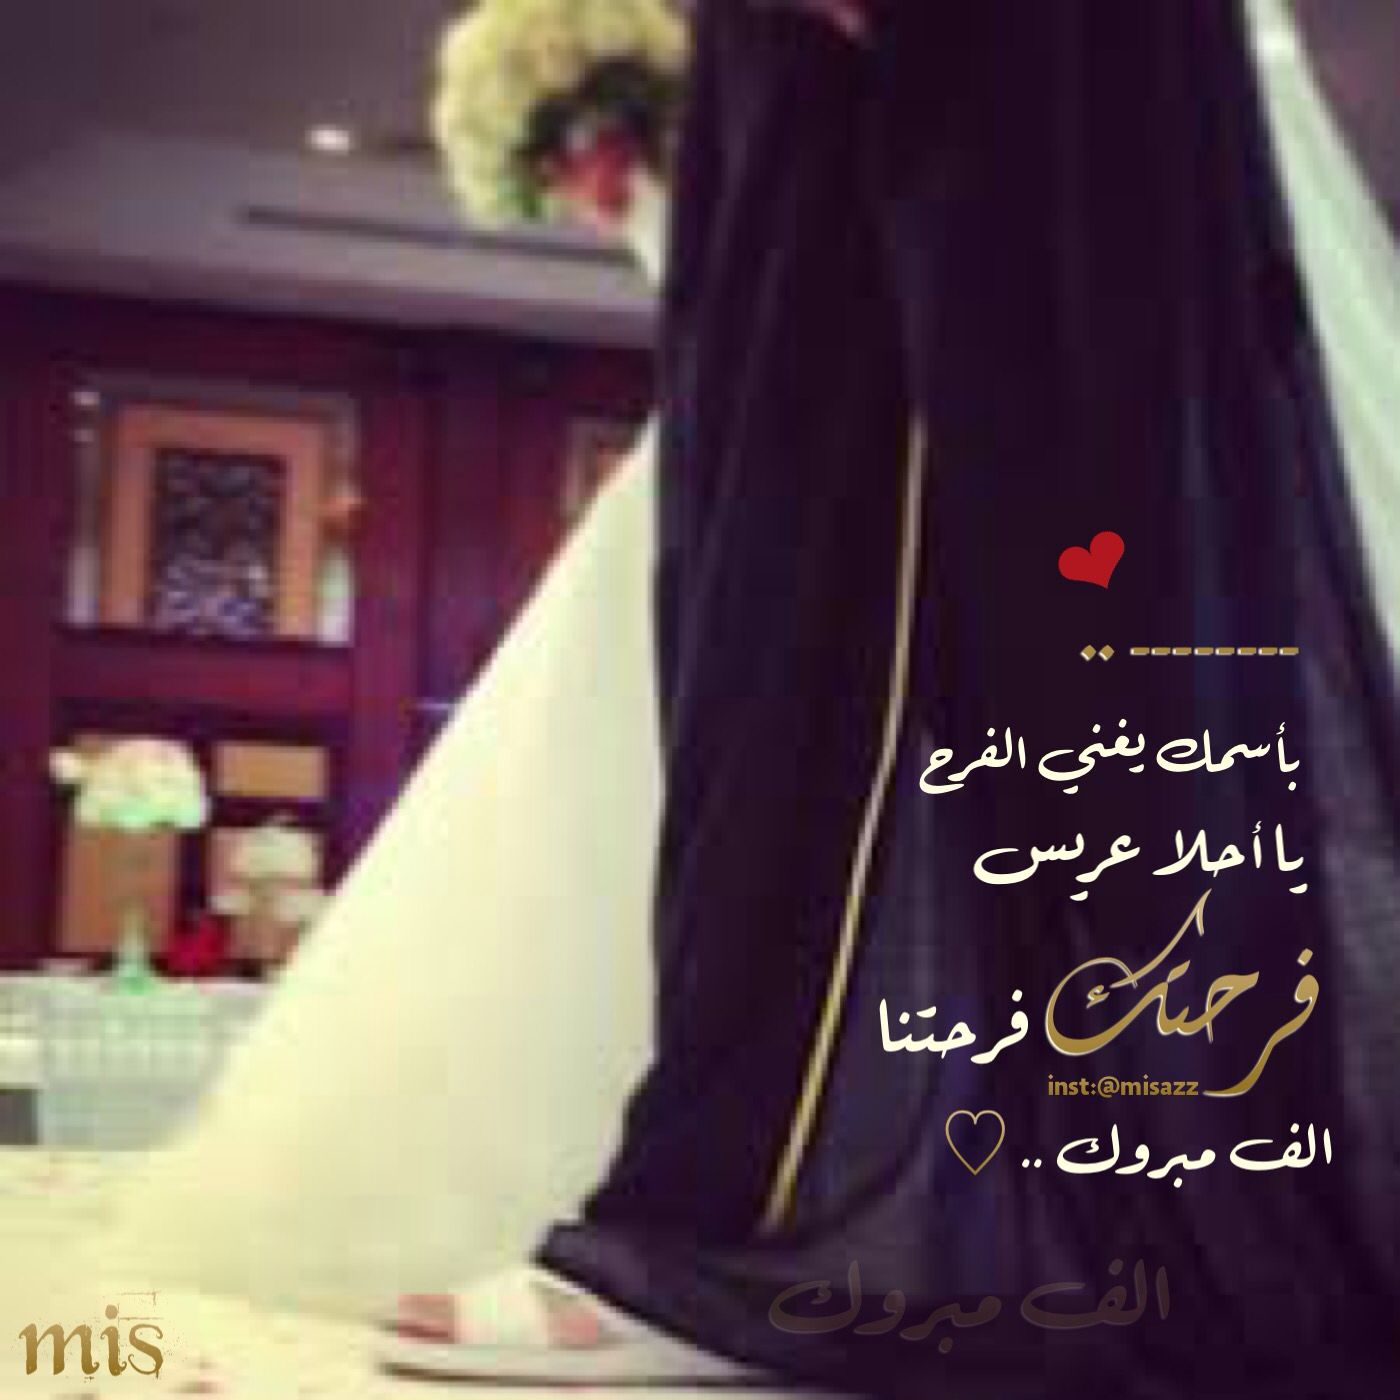 بأسمك يغني الفرح زواج عريس Wedding Cards Images Wedding Cards Wedding Dress Silhouette